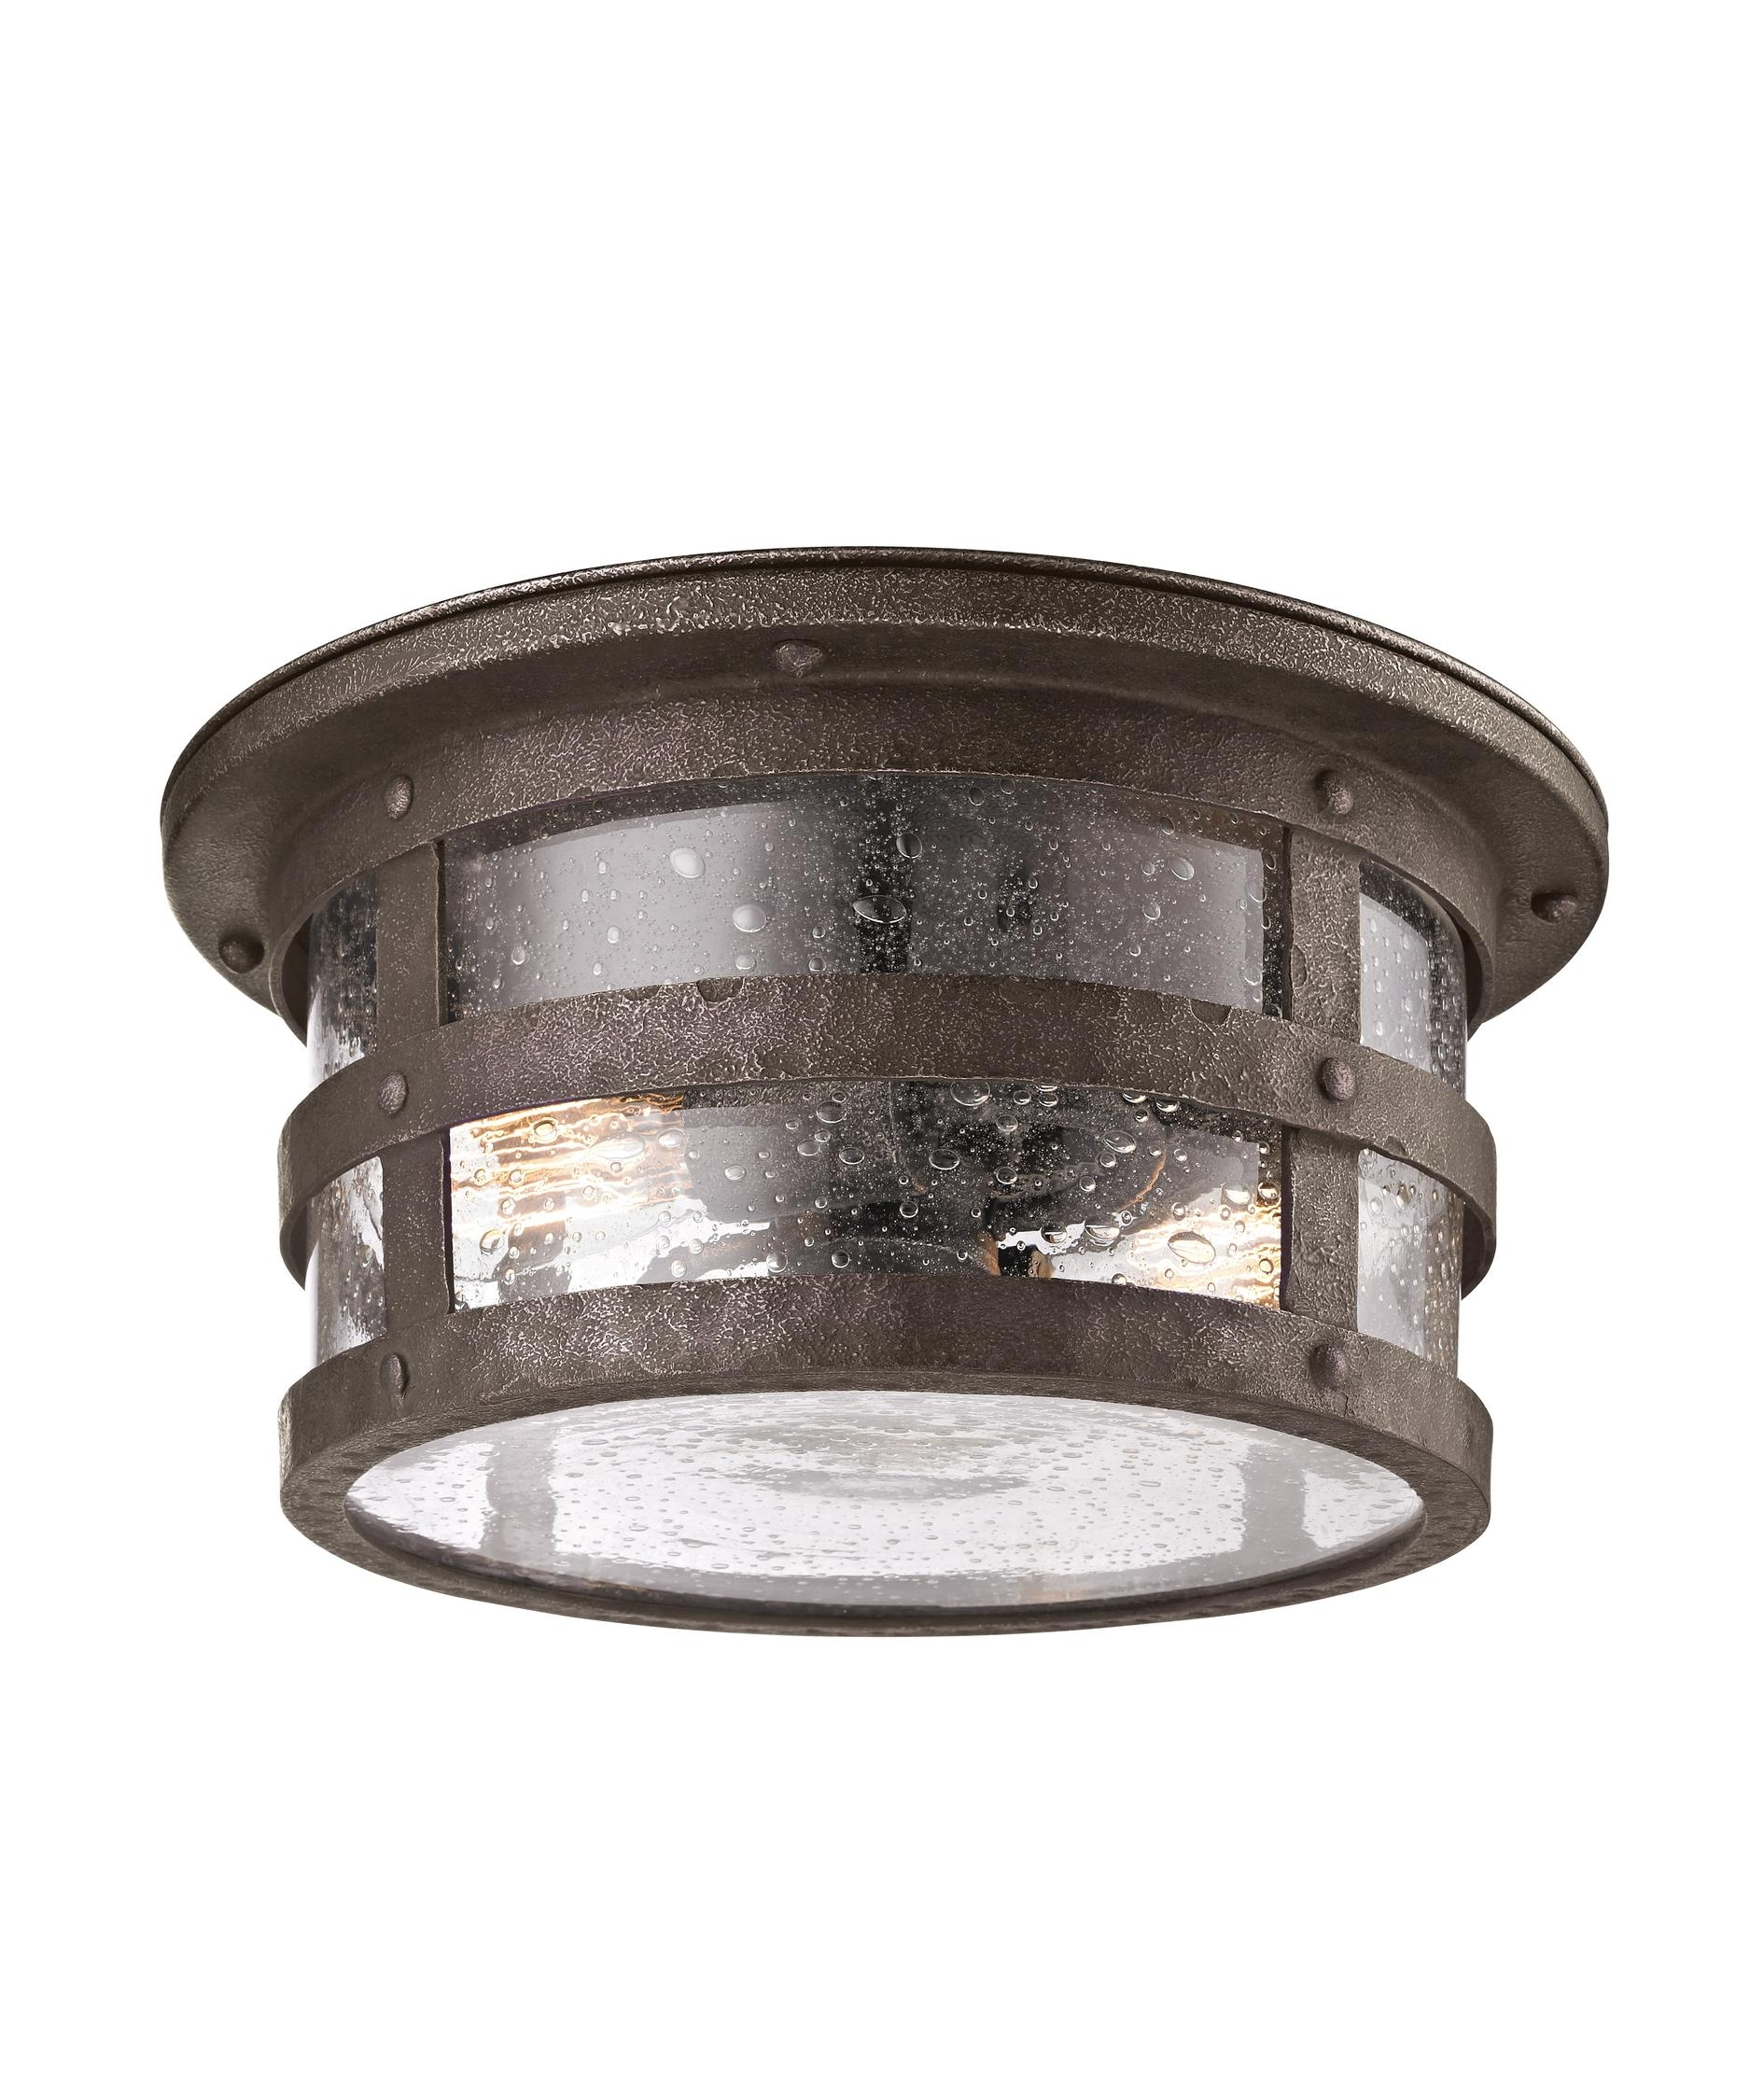 Troy Lighting C3310 Barbosa 15 Inch Wide 2 Light Outdoor Flush Mount Throughout Outdoor Ceiling Flush Lights (#14 of 15)